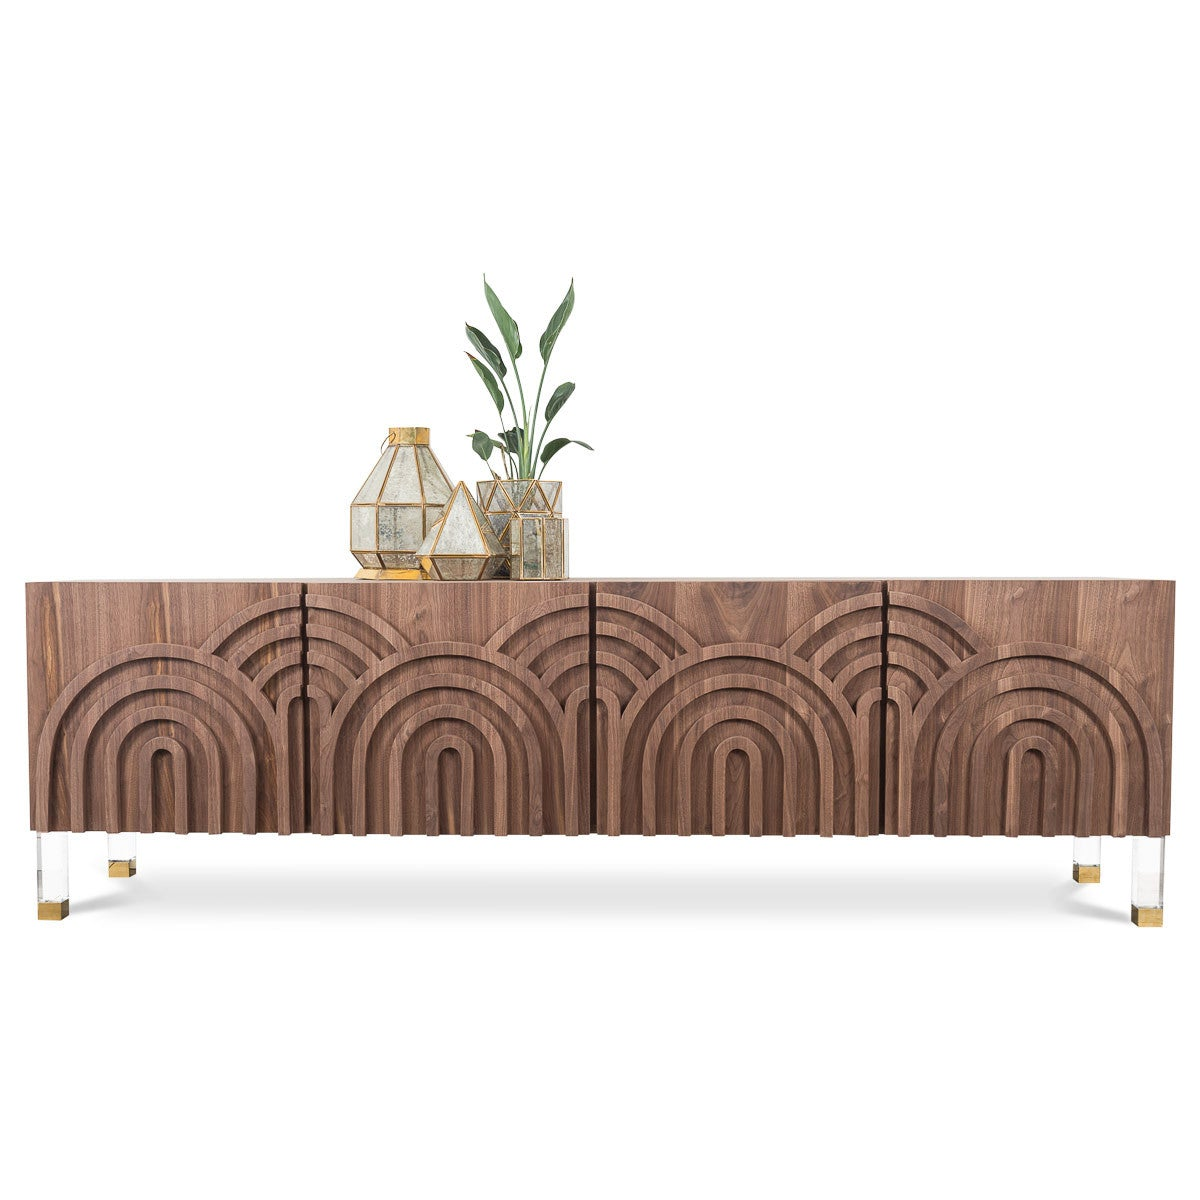 Arches 4 Door Credenza in Walnut - ModShop1.com